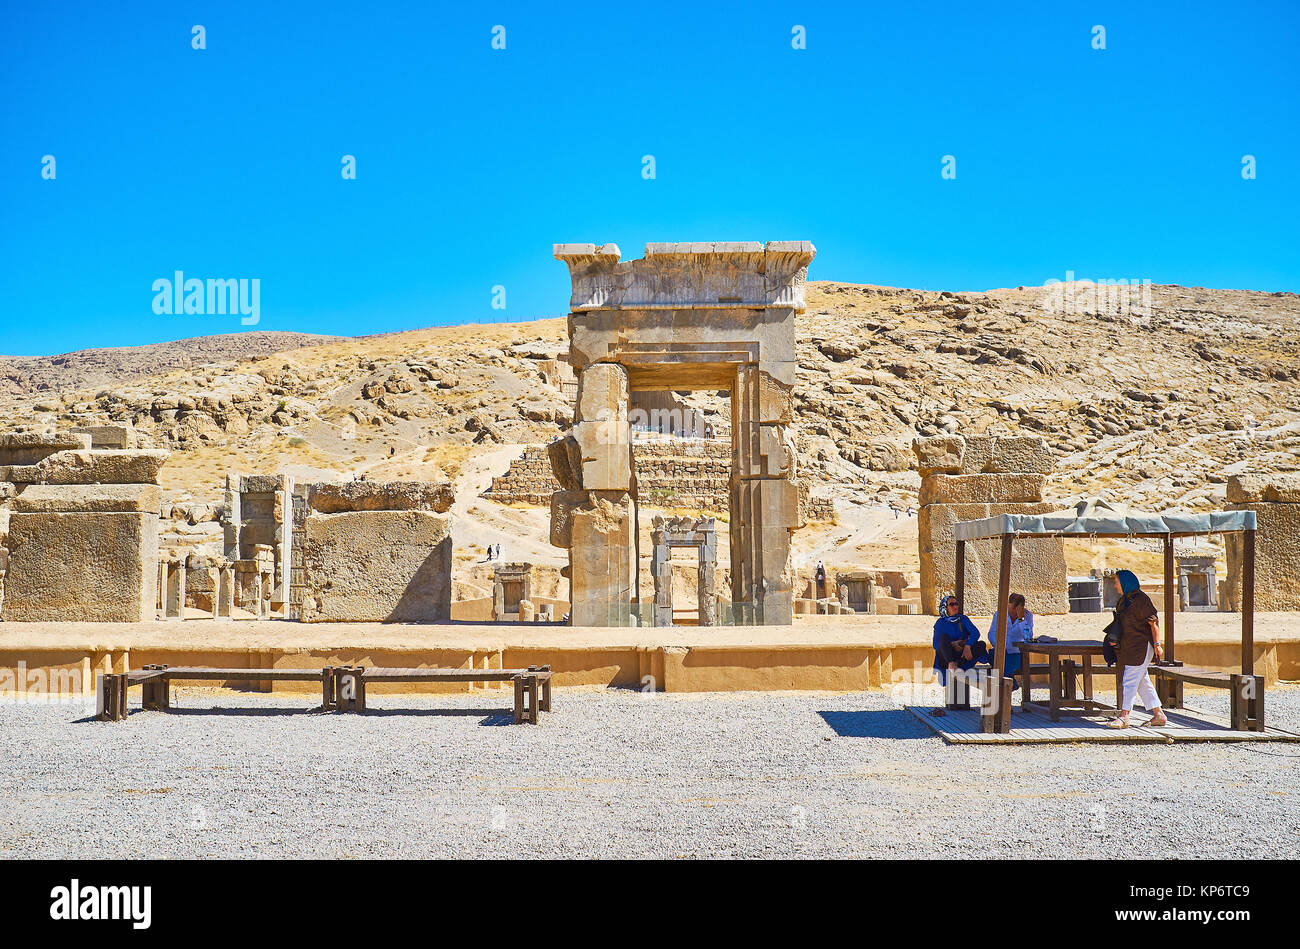 PERSEPOLIS, IRAN - OCTOBER 13, 2017: The archaeological site of Persepolis with preserved architecture of ancient - Stock Image